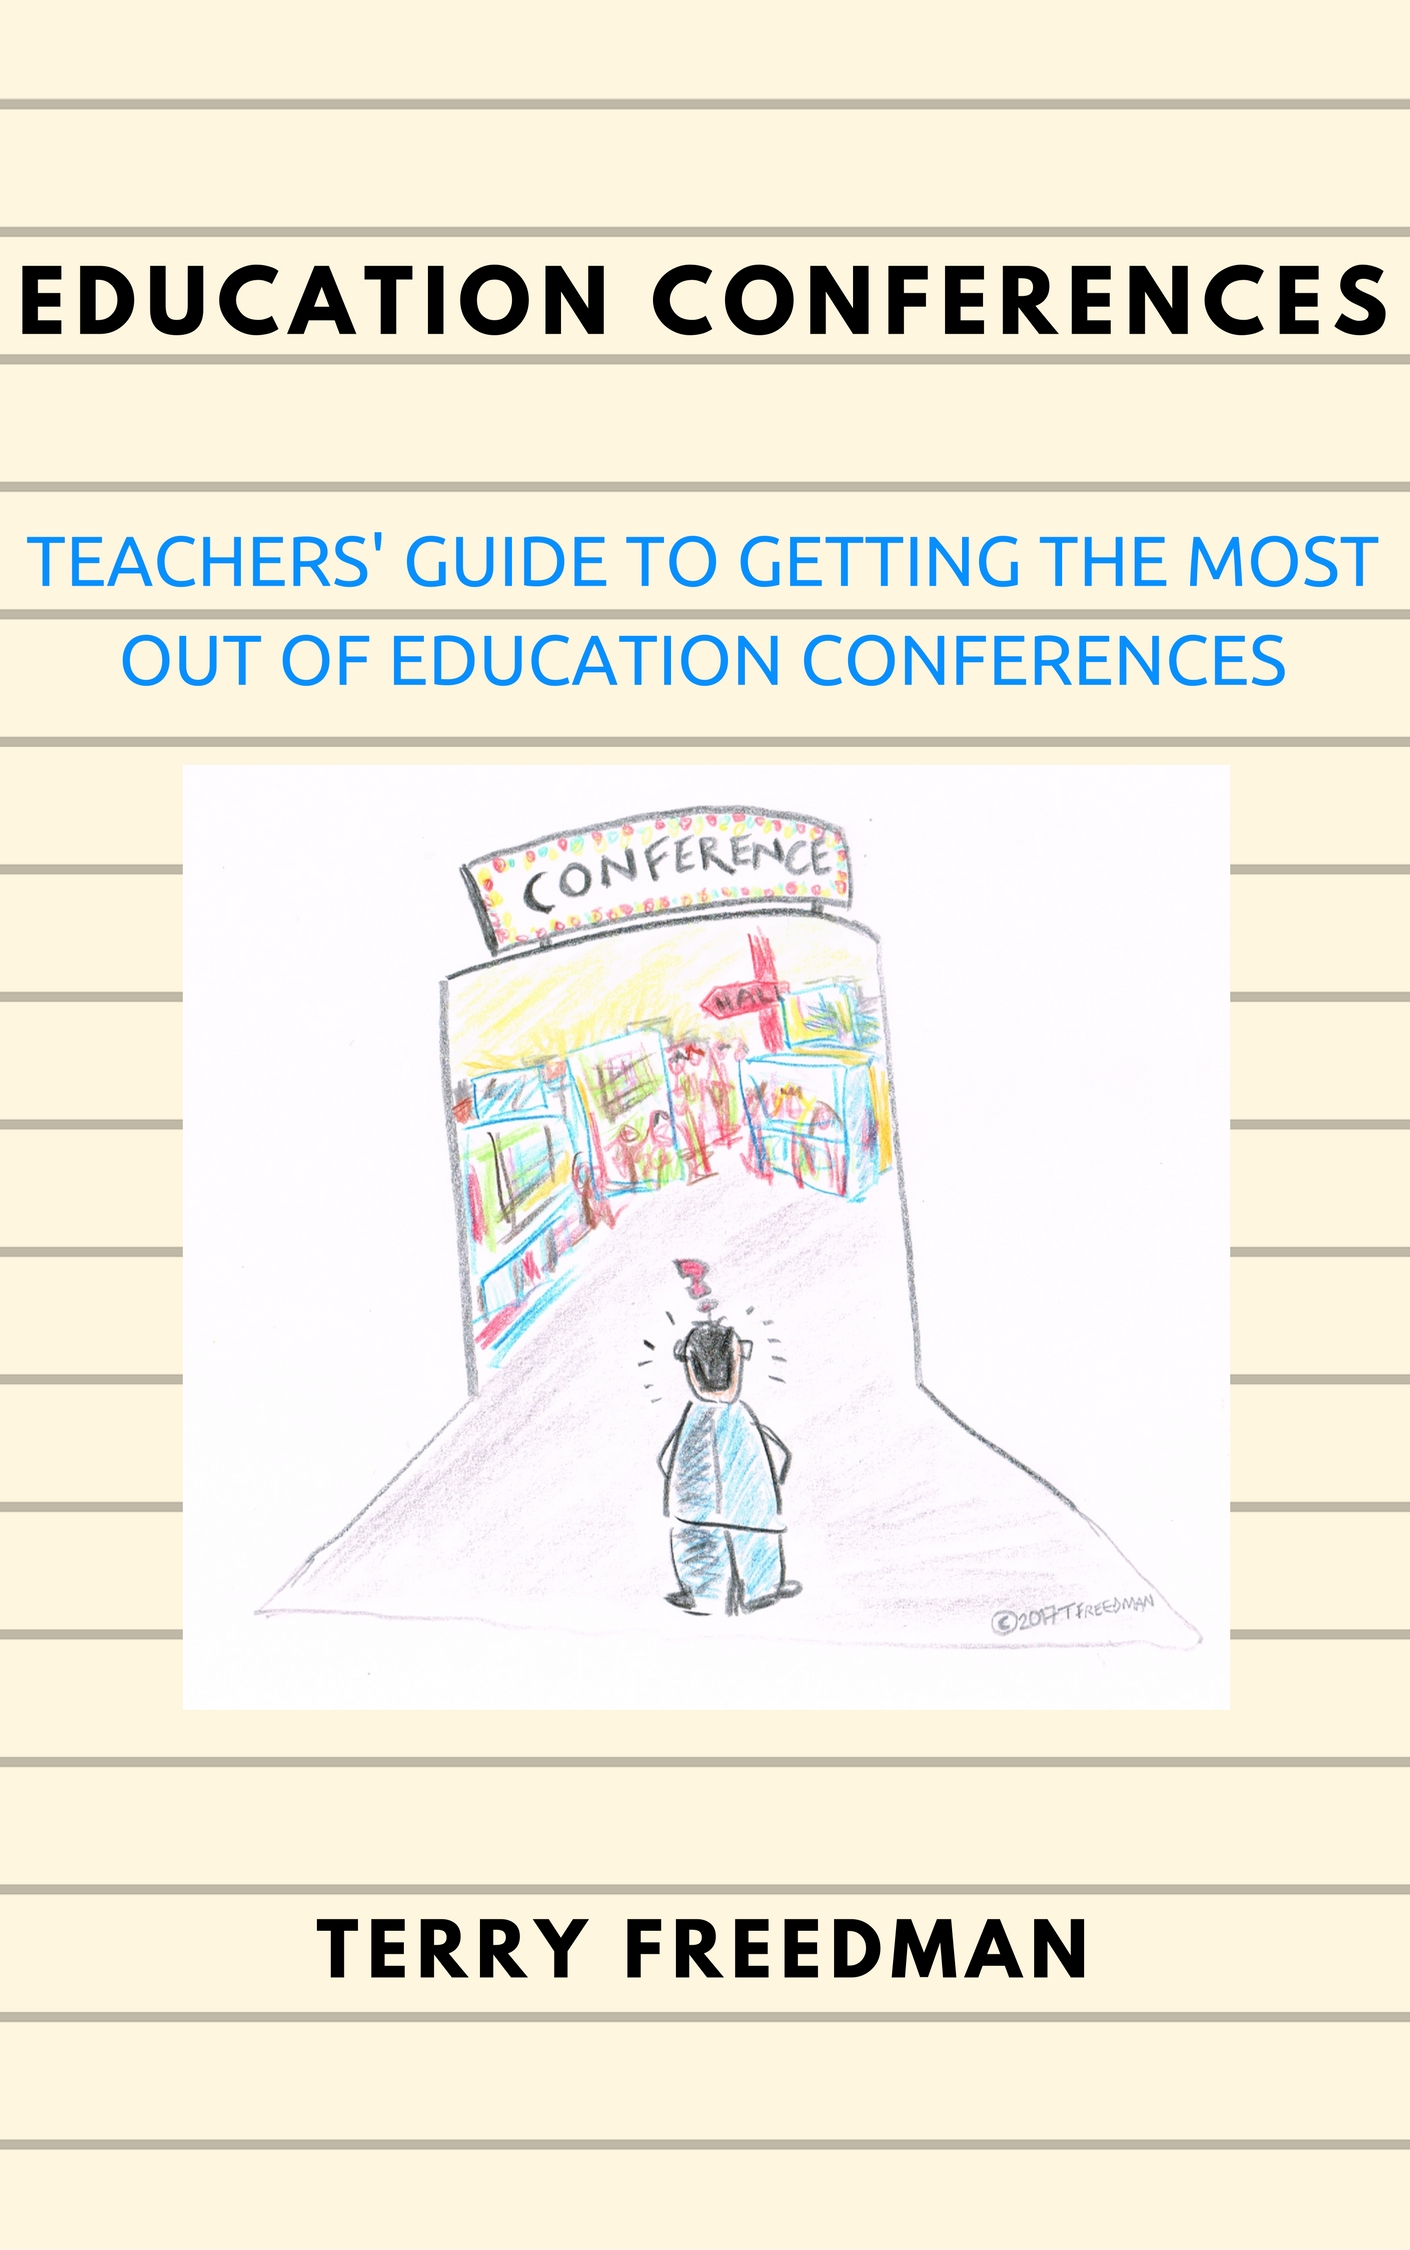 A new cover, but the same book, which is available at  http://viewBook.at/conferences .